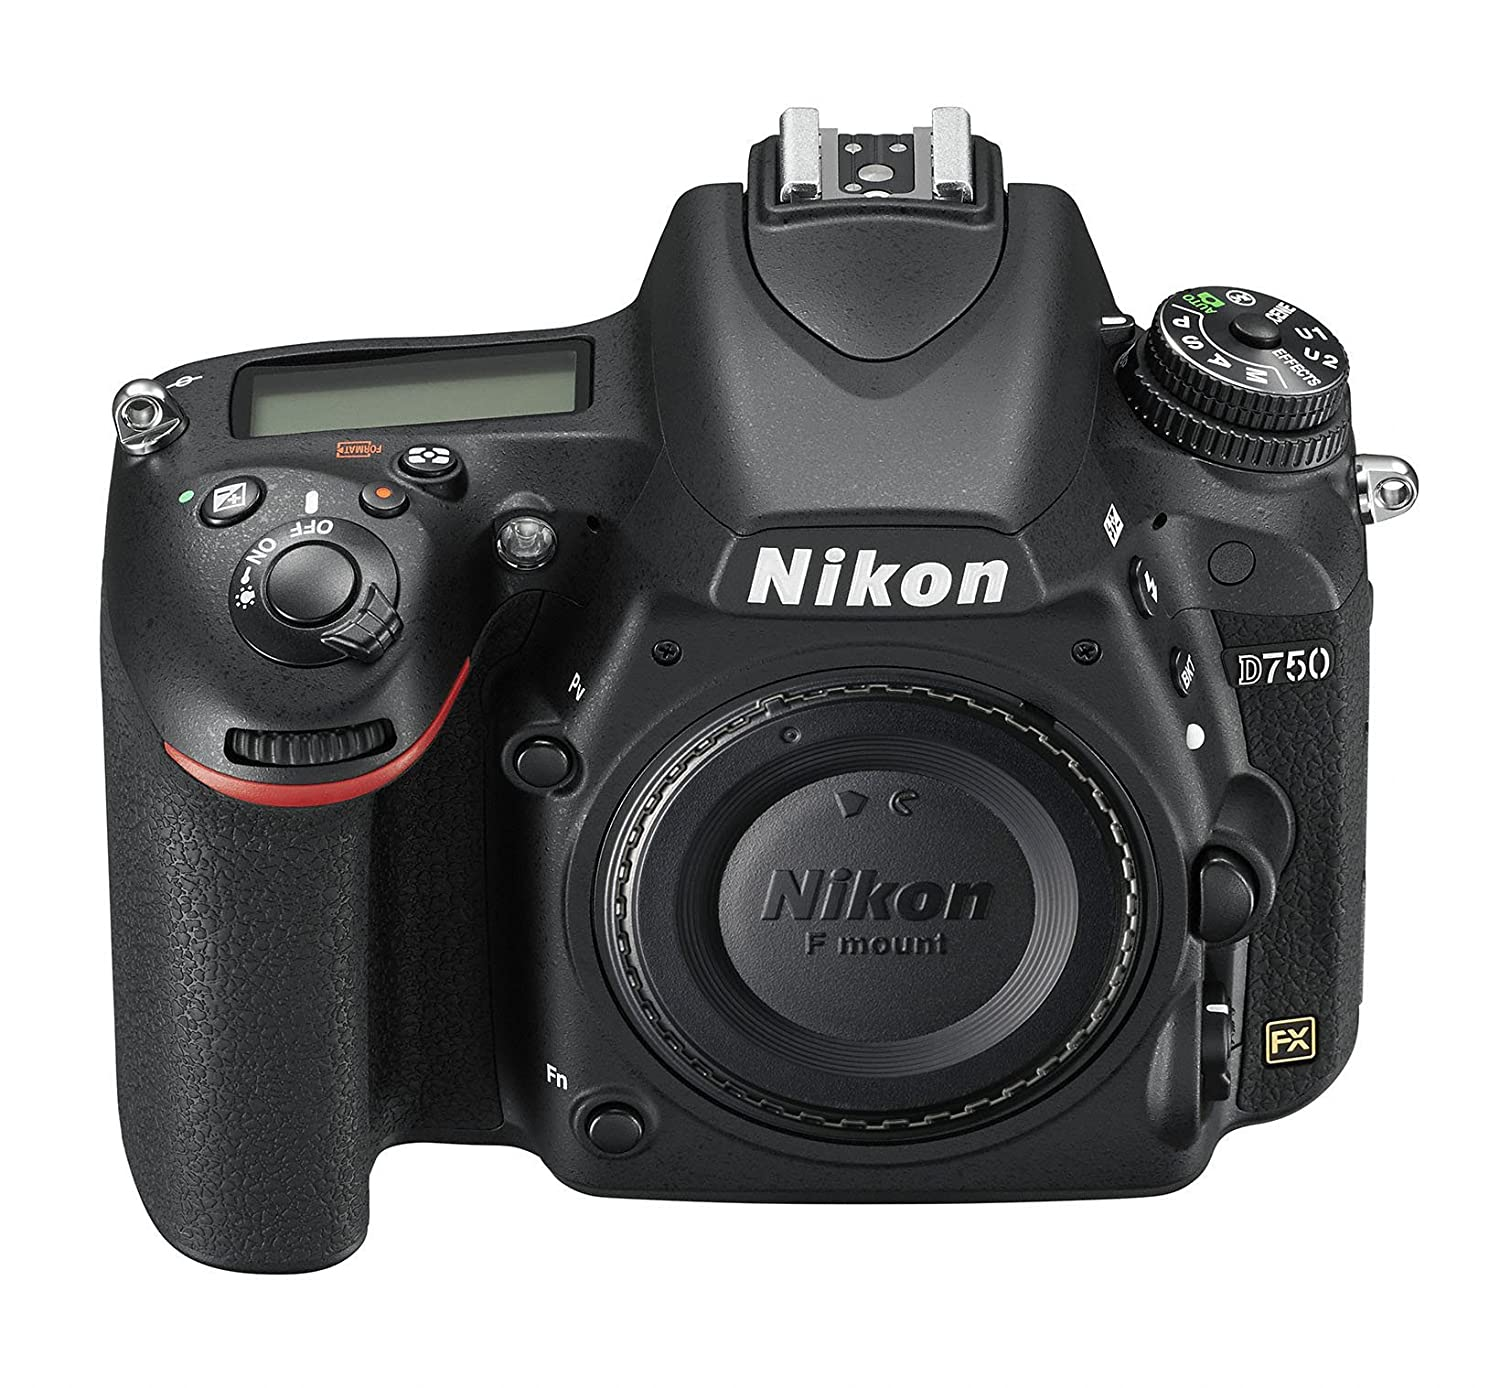 promo code b13e7 a3f5a Amazon.com   Nikon D750 FX-format Digital SLR Camera Body   Camera   Photo